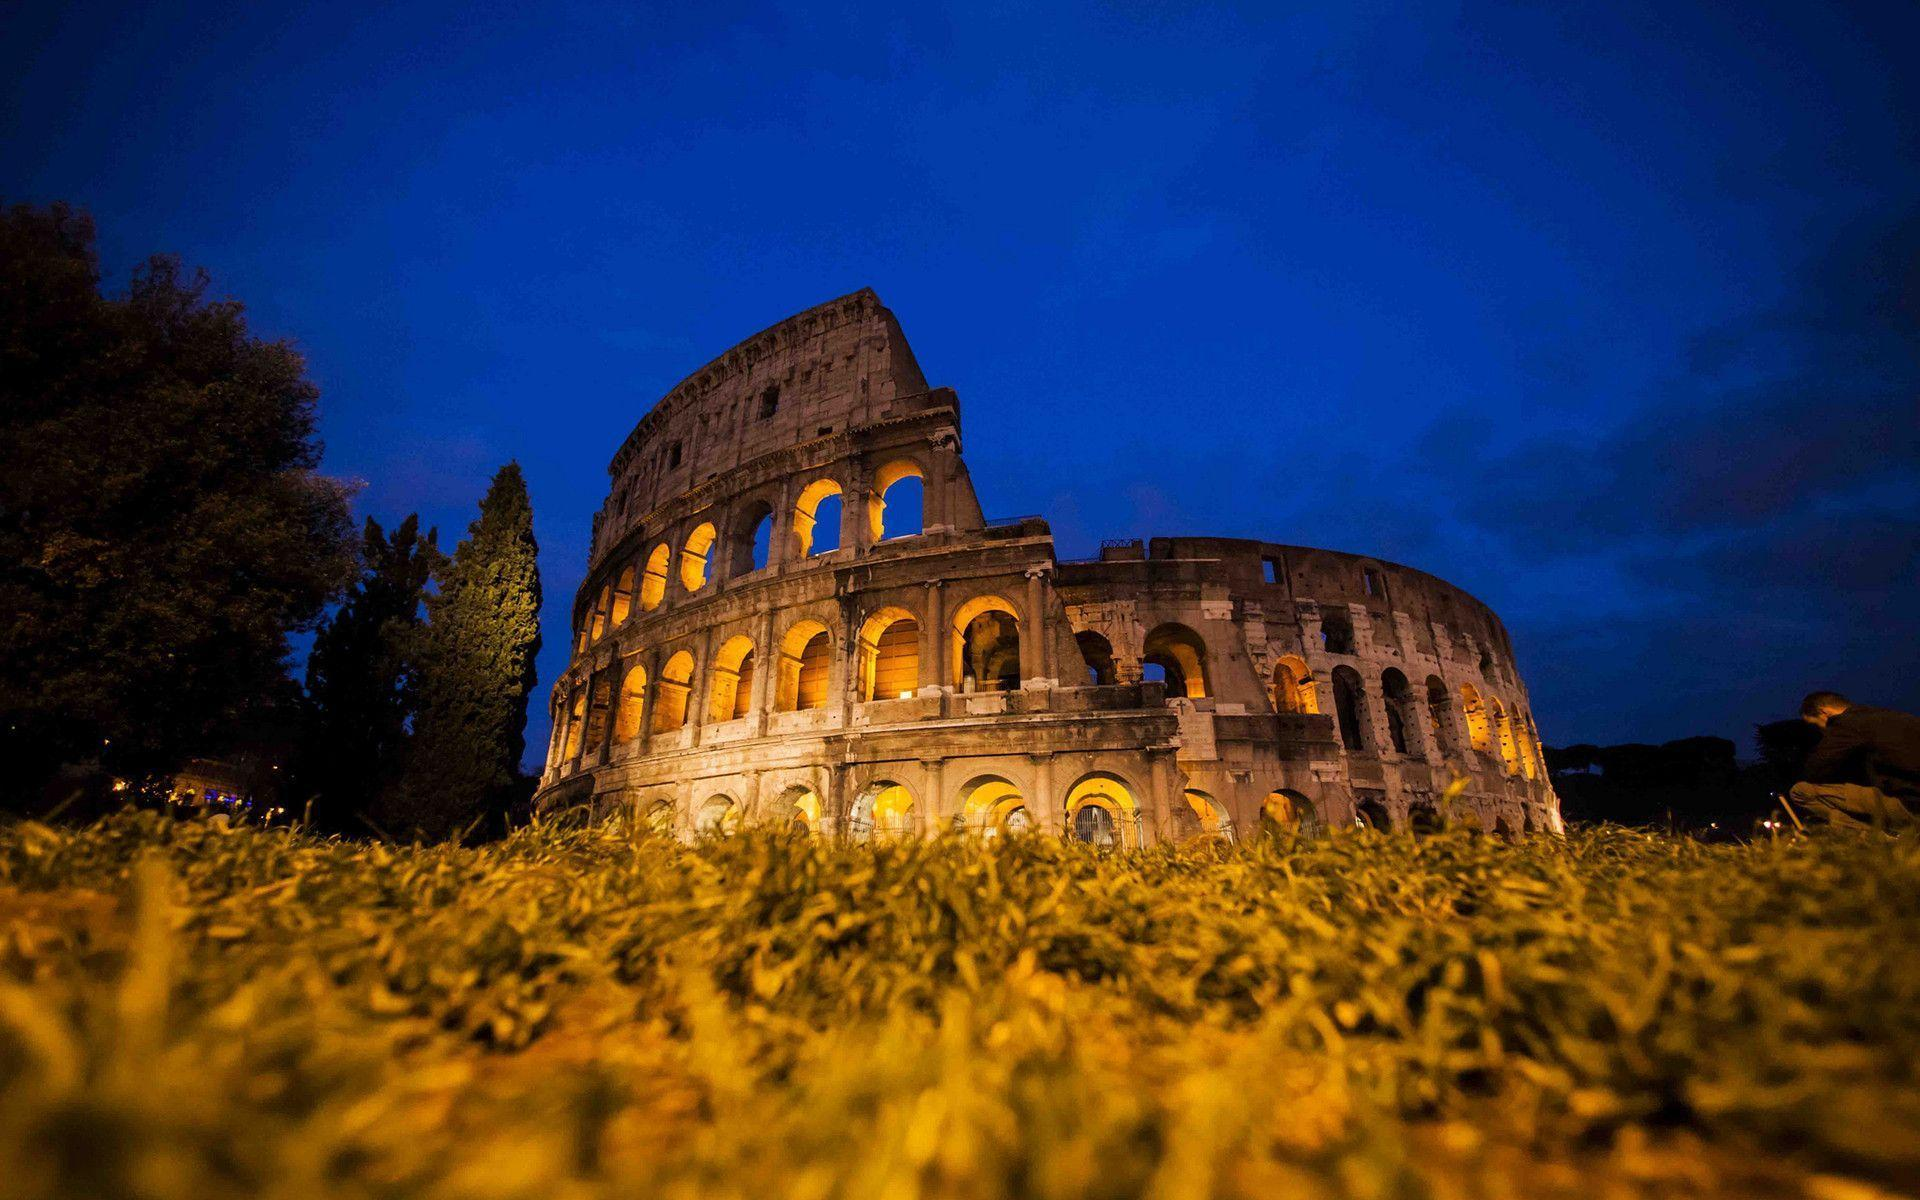 Ancient rome wallpapers wallpaper cave for Architecture 4k wallpaper